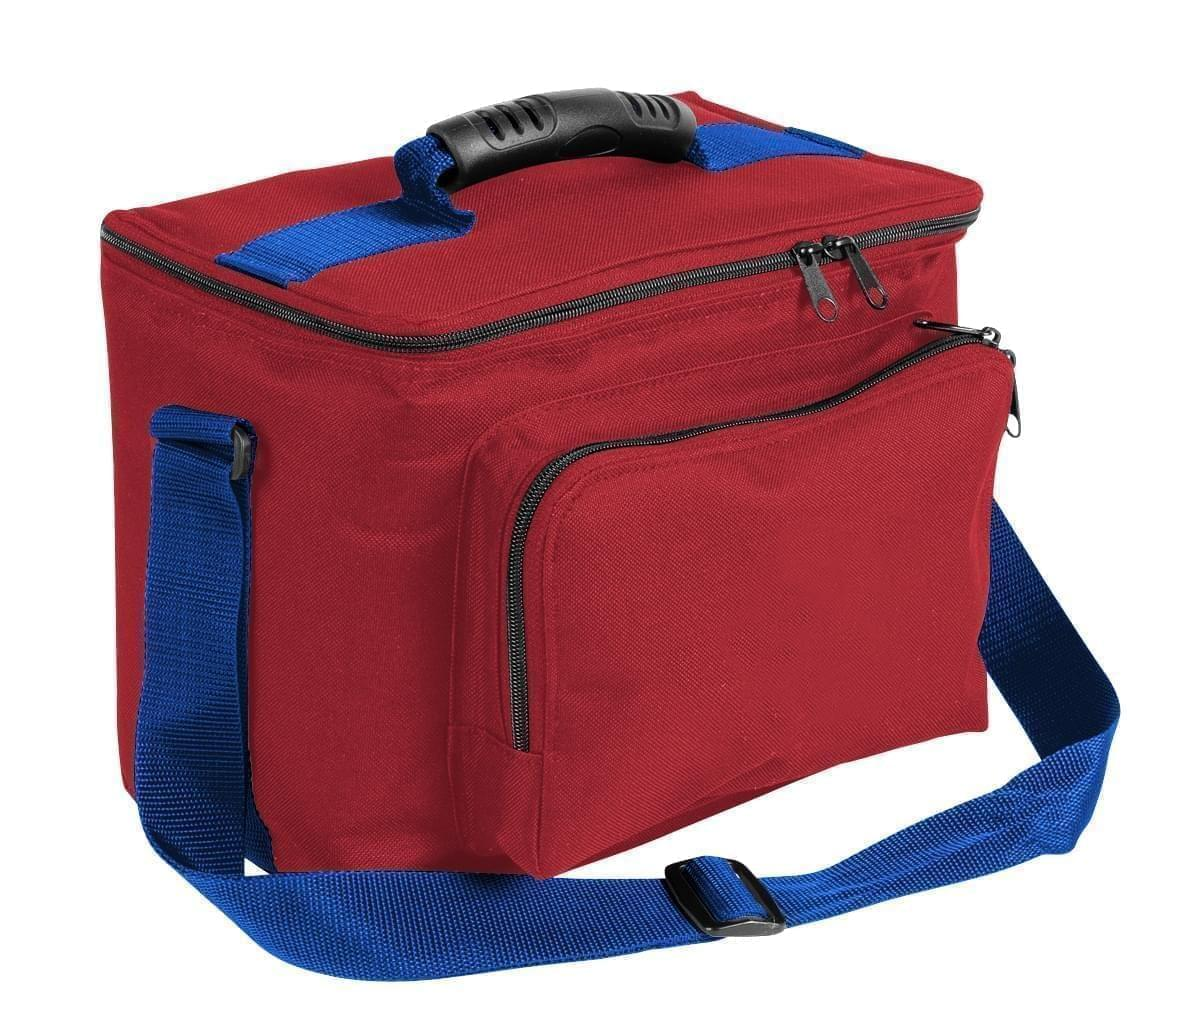 USA Made Nylon Poly Lunch Coolers, 11001161-600